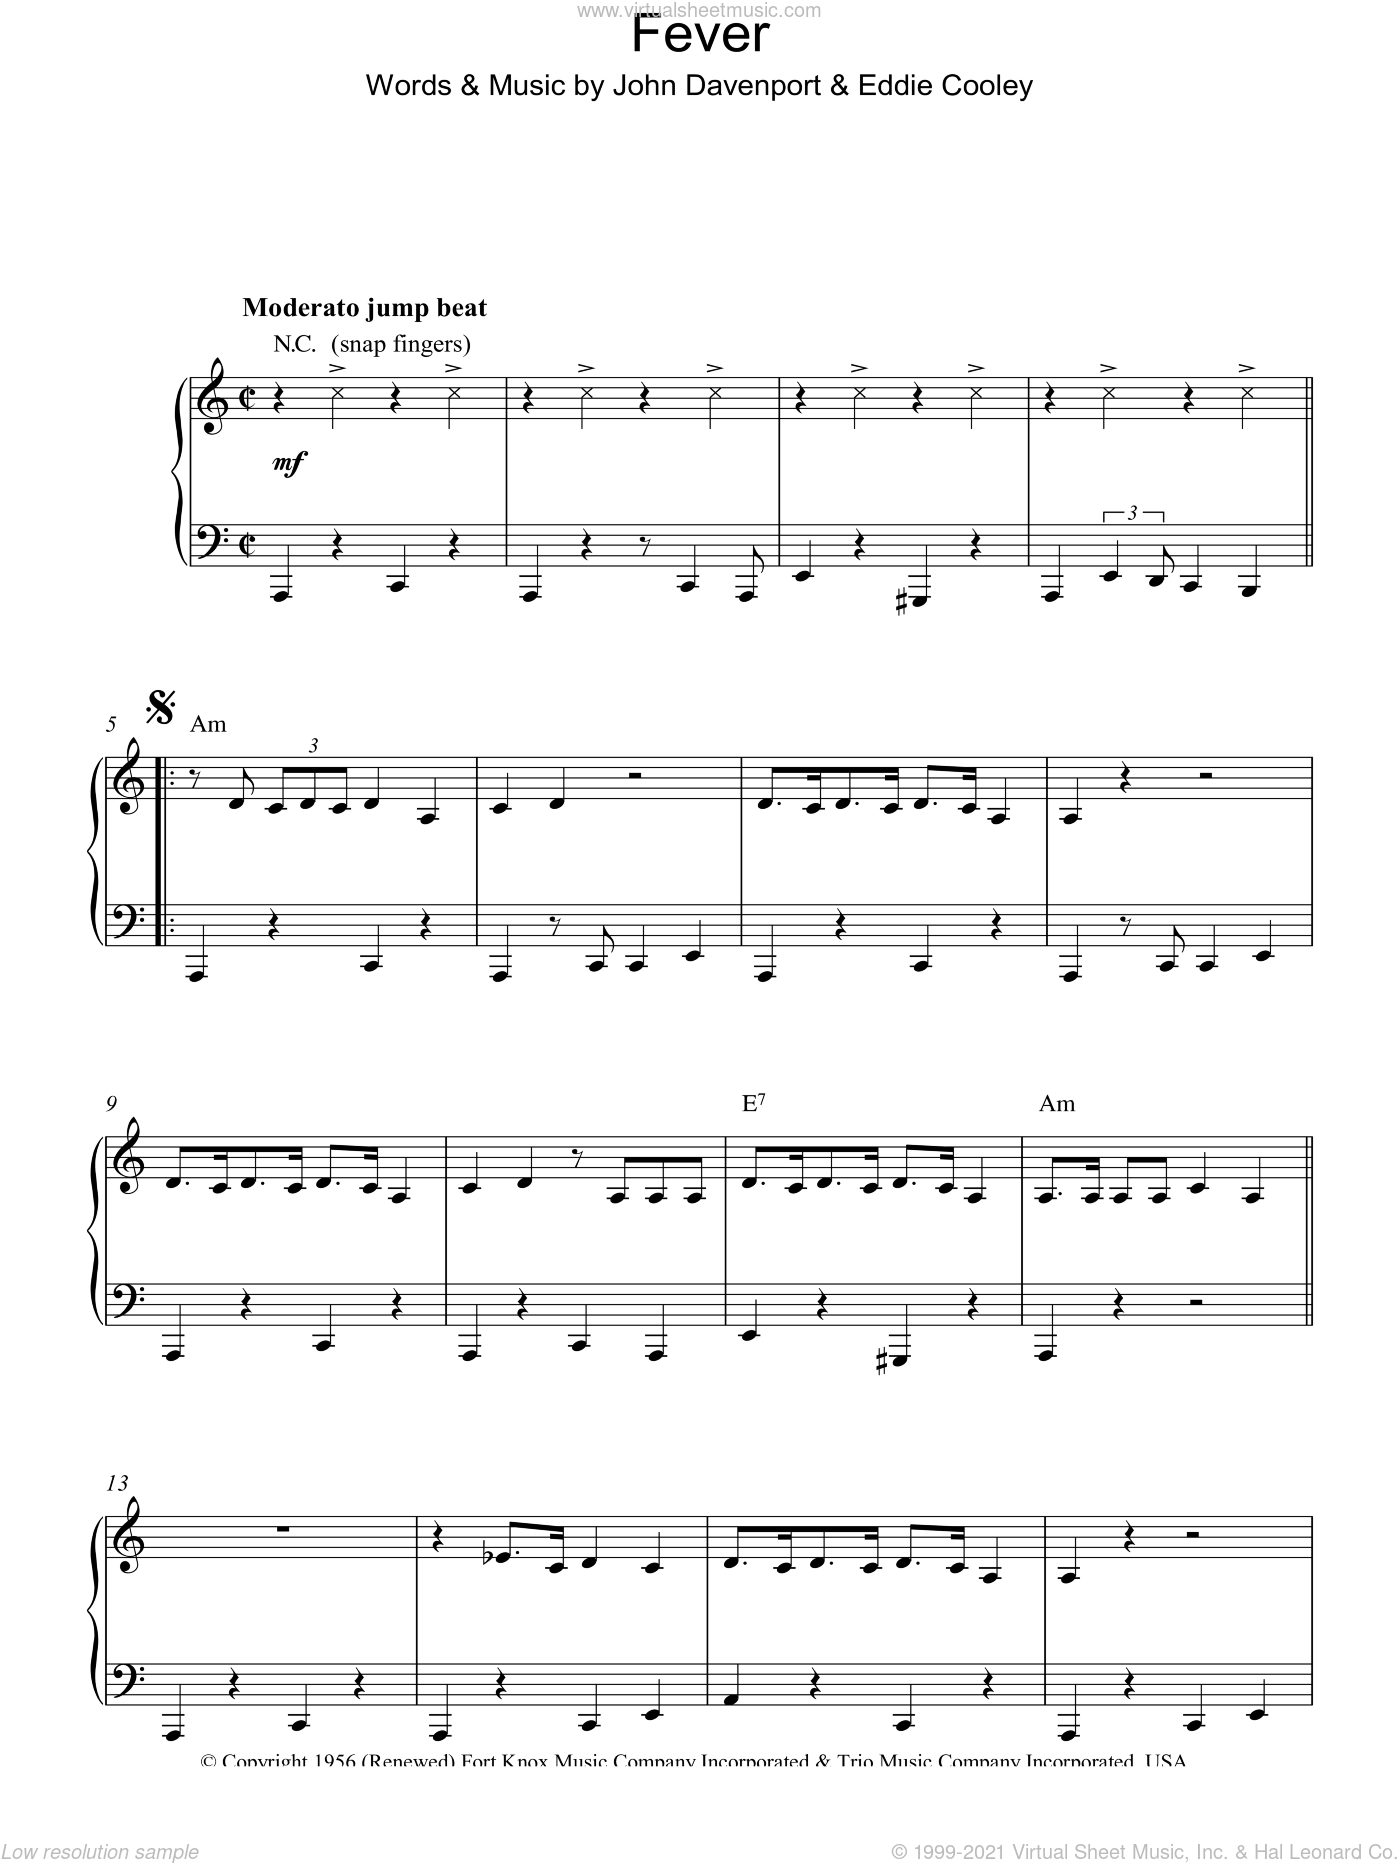 Fever sheet music for piano solo by Peggy Lee, Eddie Cooley and John Davenport, intermediate skill level